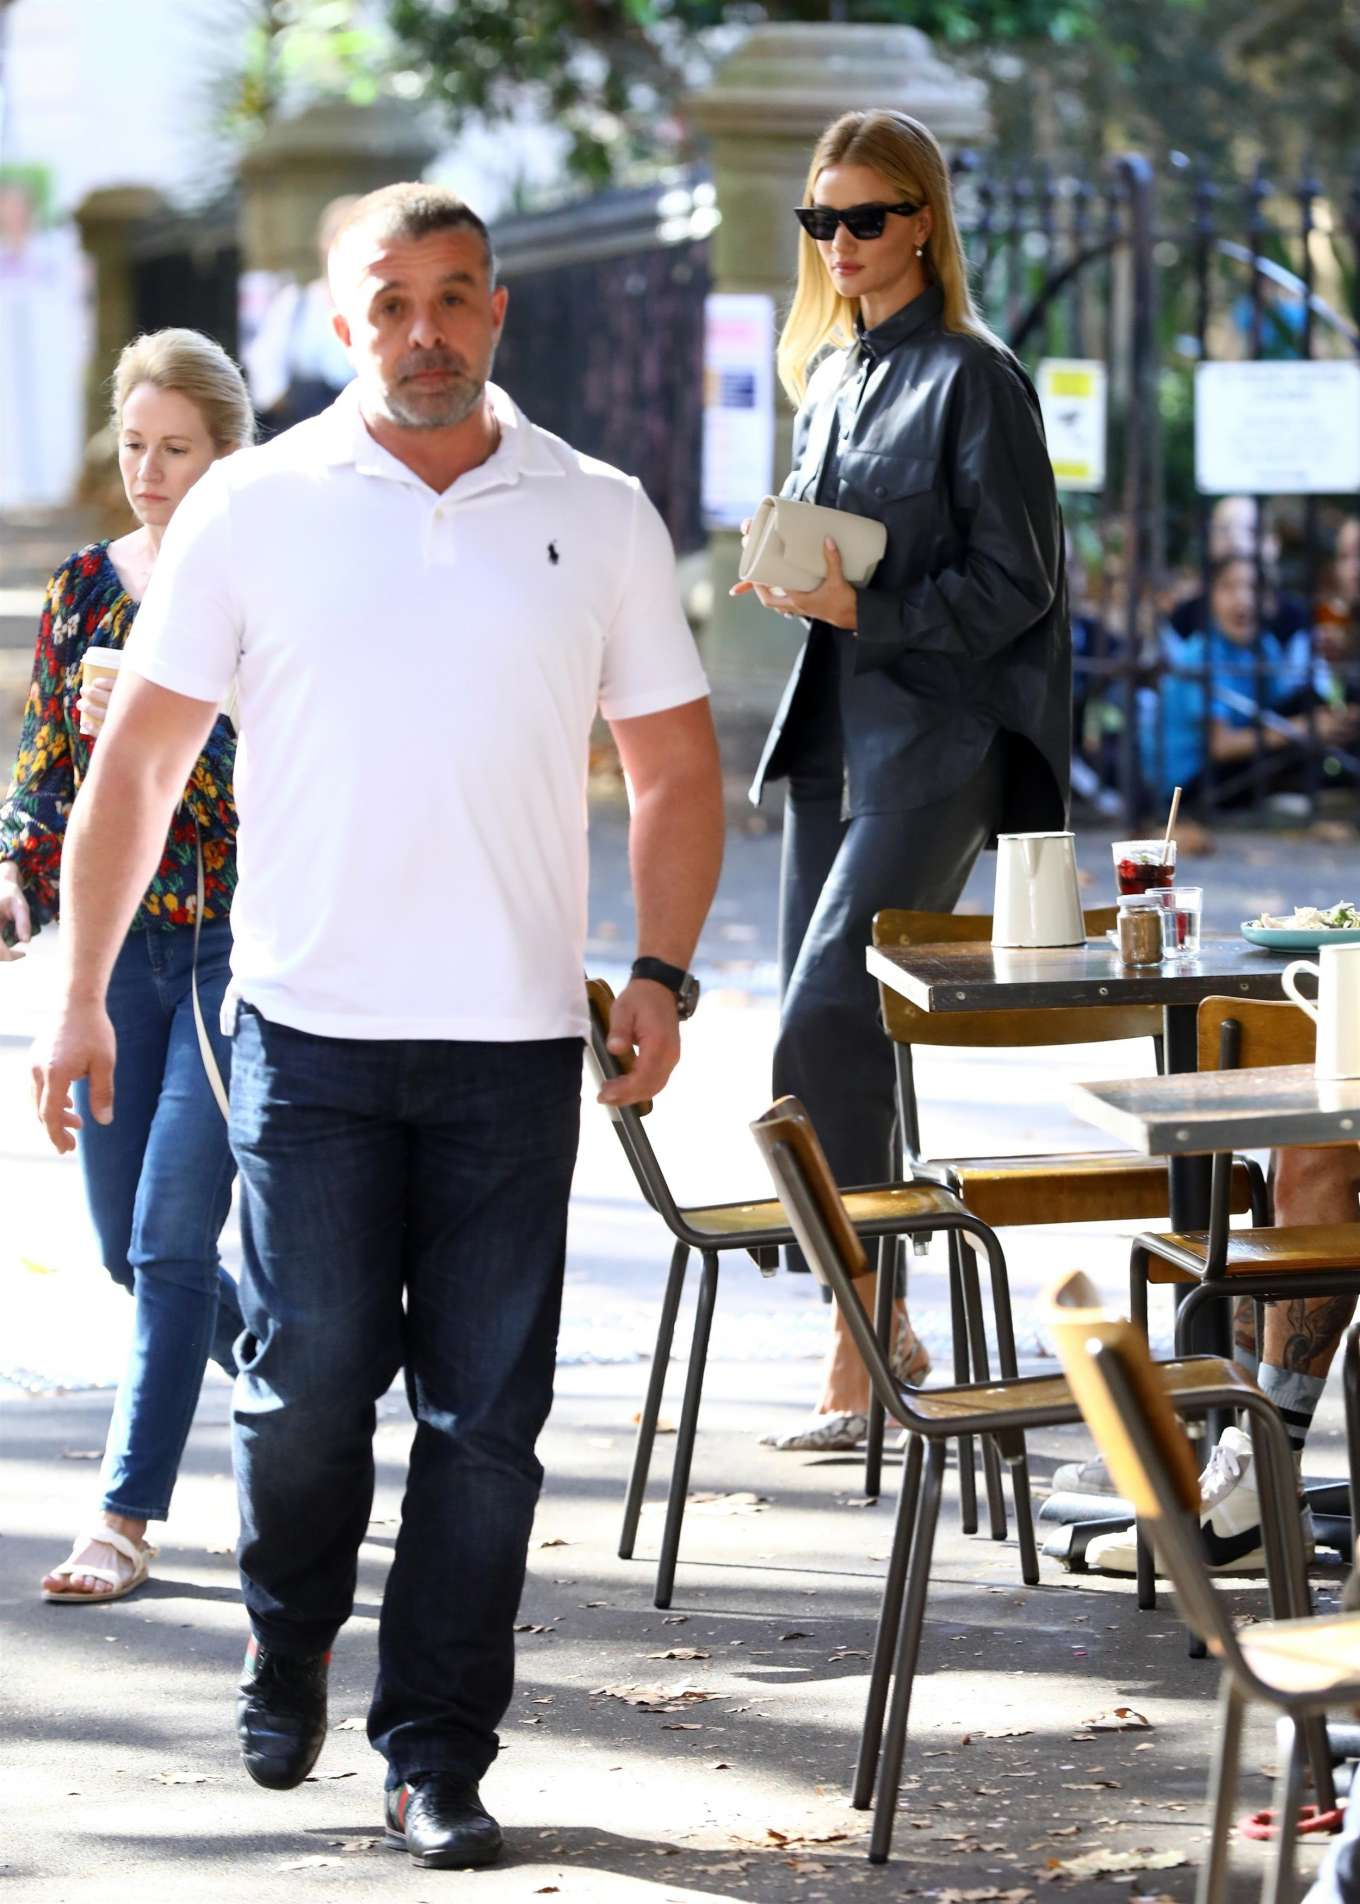 Rosie Huntington Whiteley 2019 : Rosie Huntington Whiteley: Out for coffee in Surry Hills-18